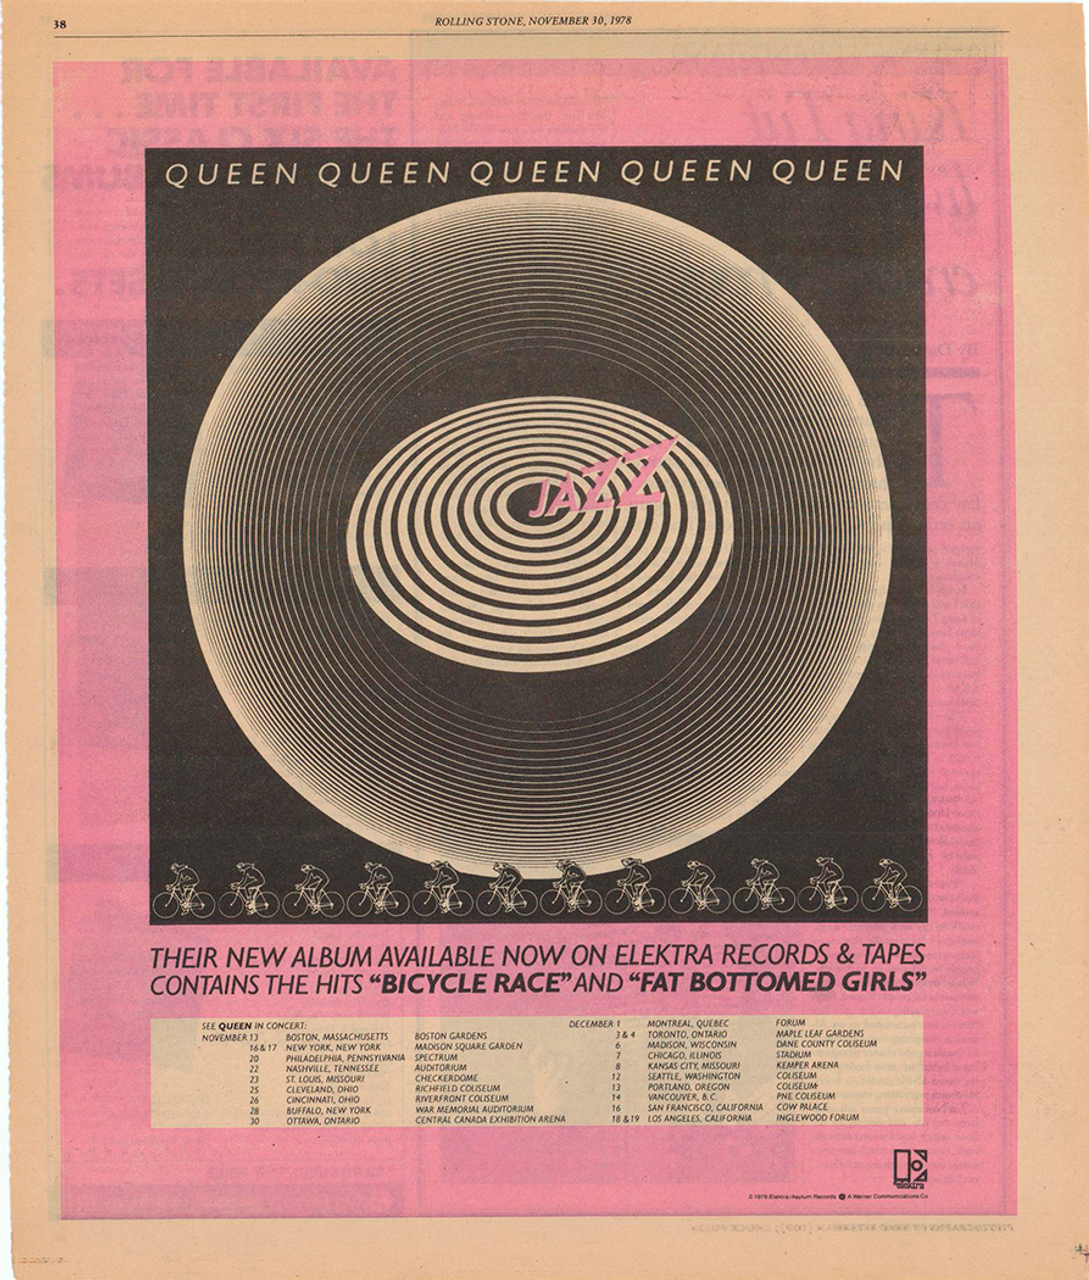 Vintage Queen Bicycle Race Fat Bottomed Girls Poster